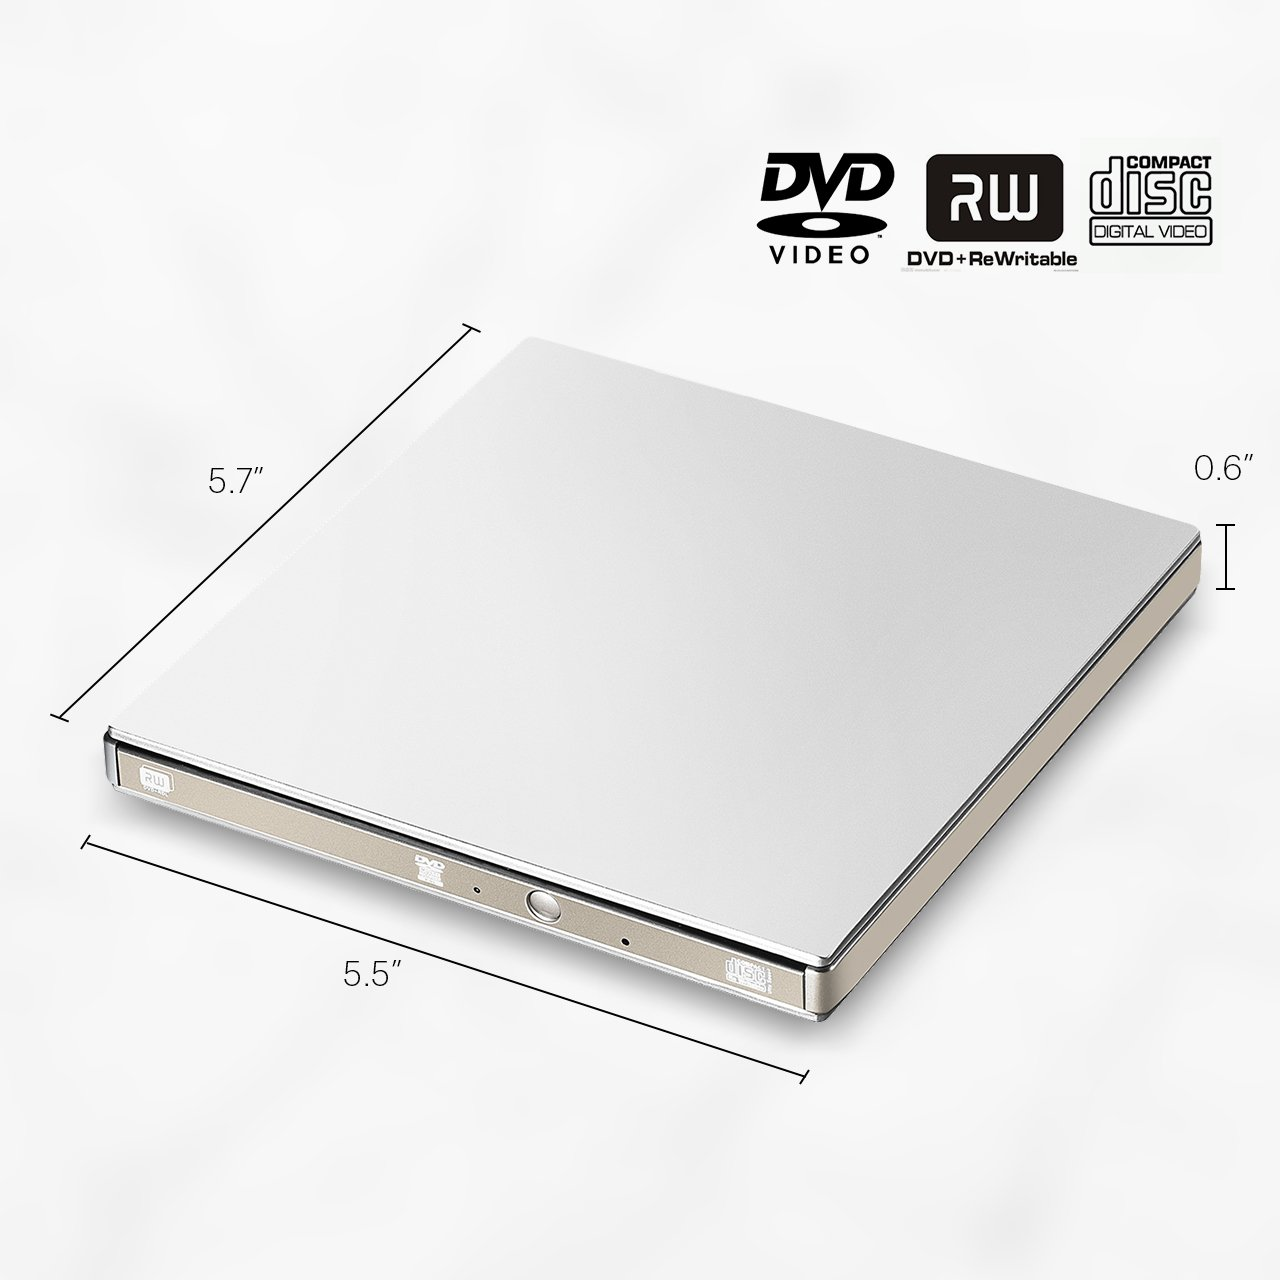 VicTsing External USB 3.0 CD DVD Drive, Ultra Slim Optical DVD Drive CD-RW Burner Write Drive for Apple MacBook Pro Air iMac and Other Non-apple Laptops Desktops Silvery by VicTsing (Image #2)